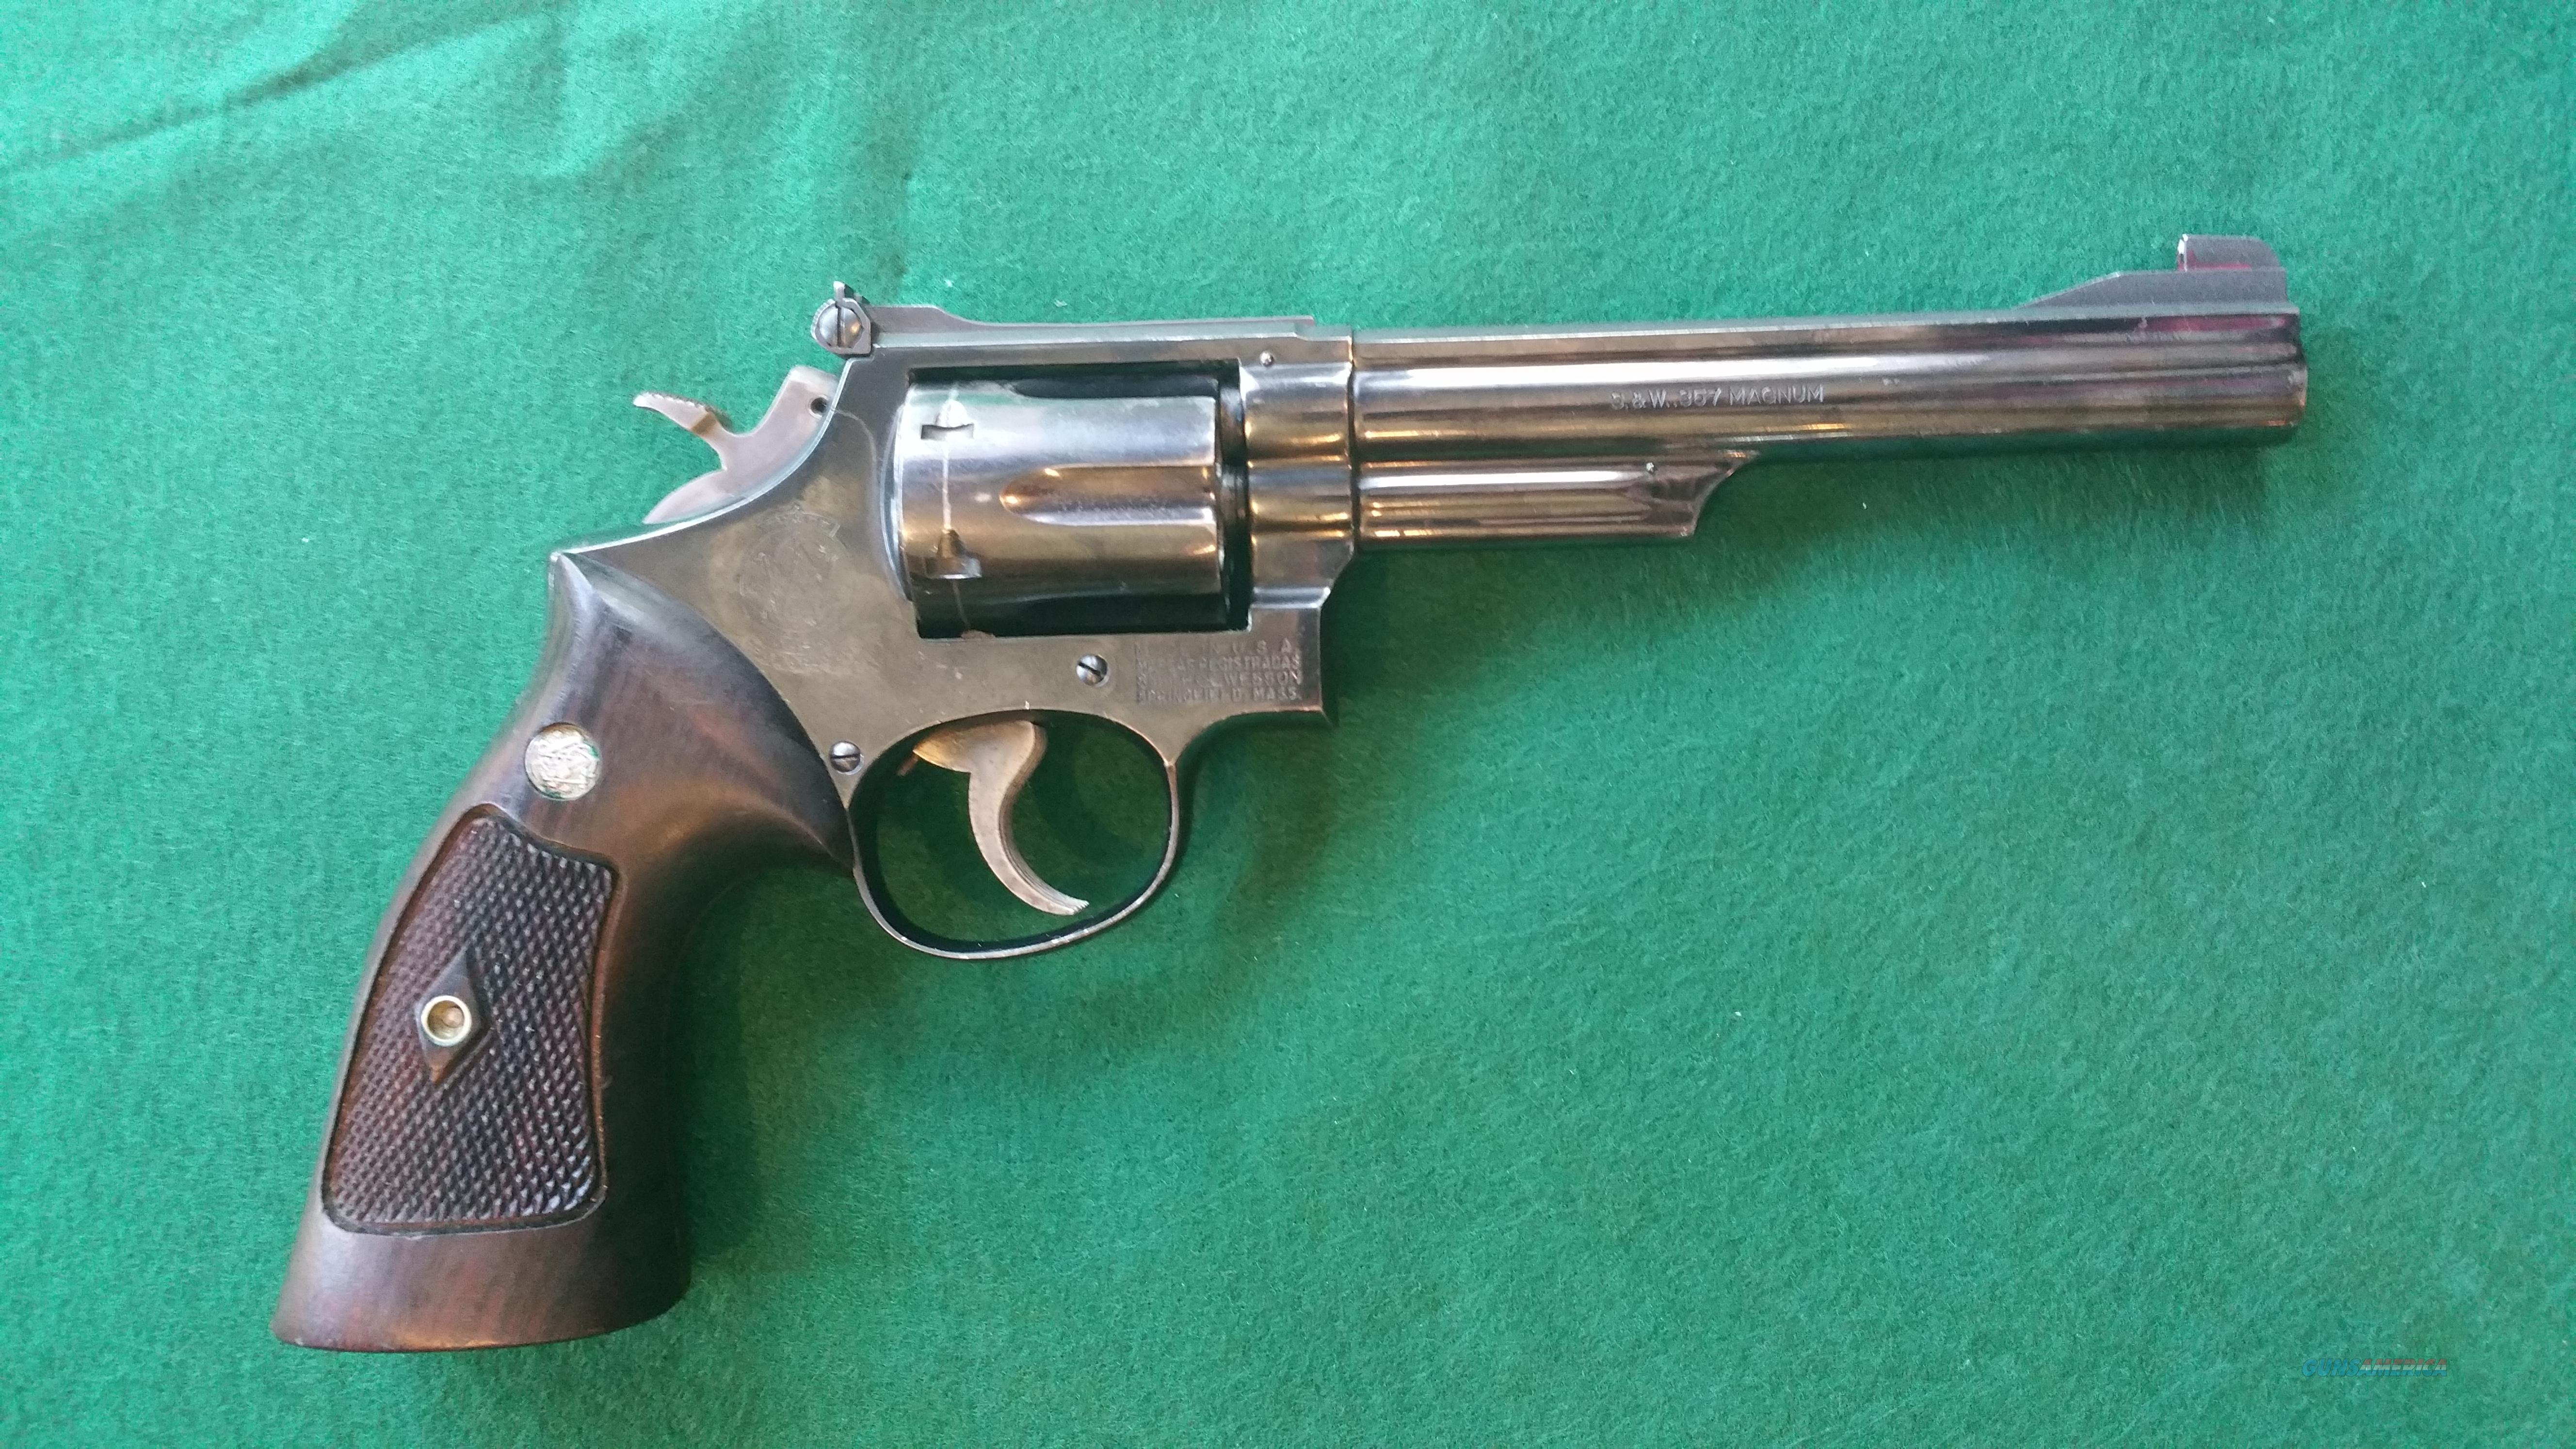 Smith and Wesson model 19-2 .357mag  Guns > Pistols > Smith & Wesson Revolvers > Full Frame Revolver